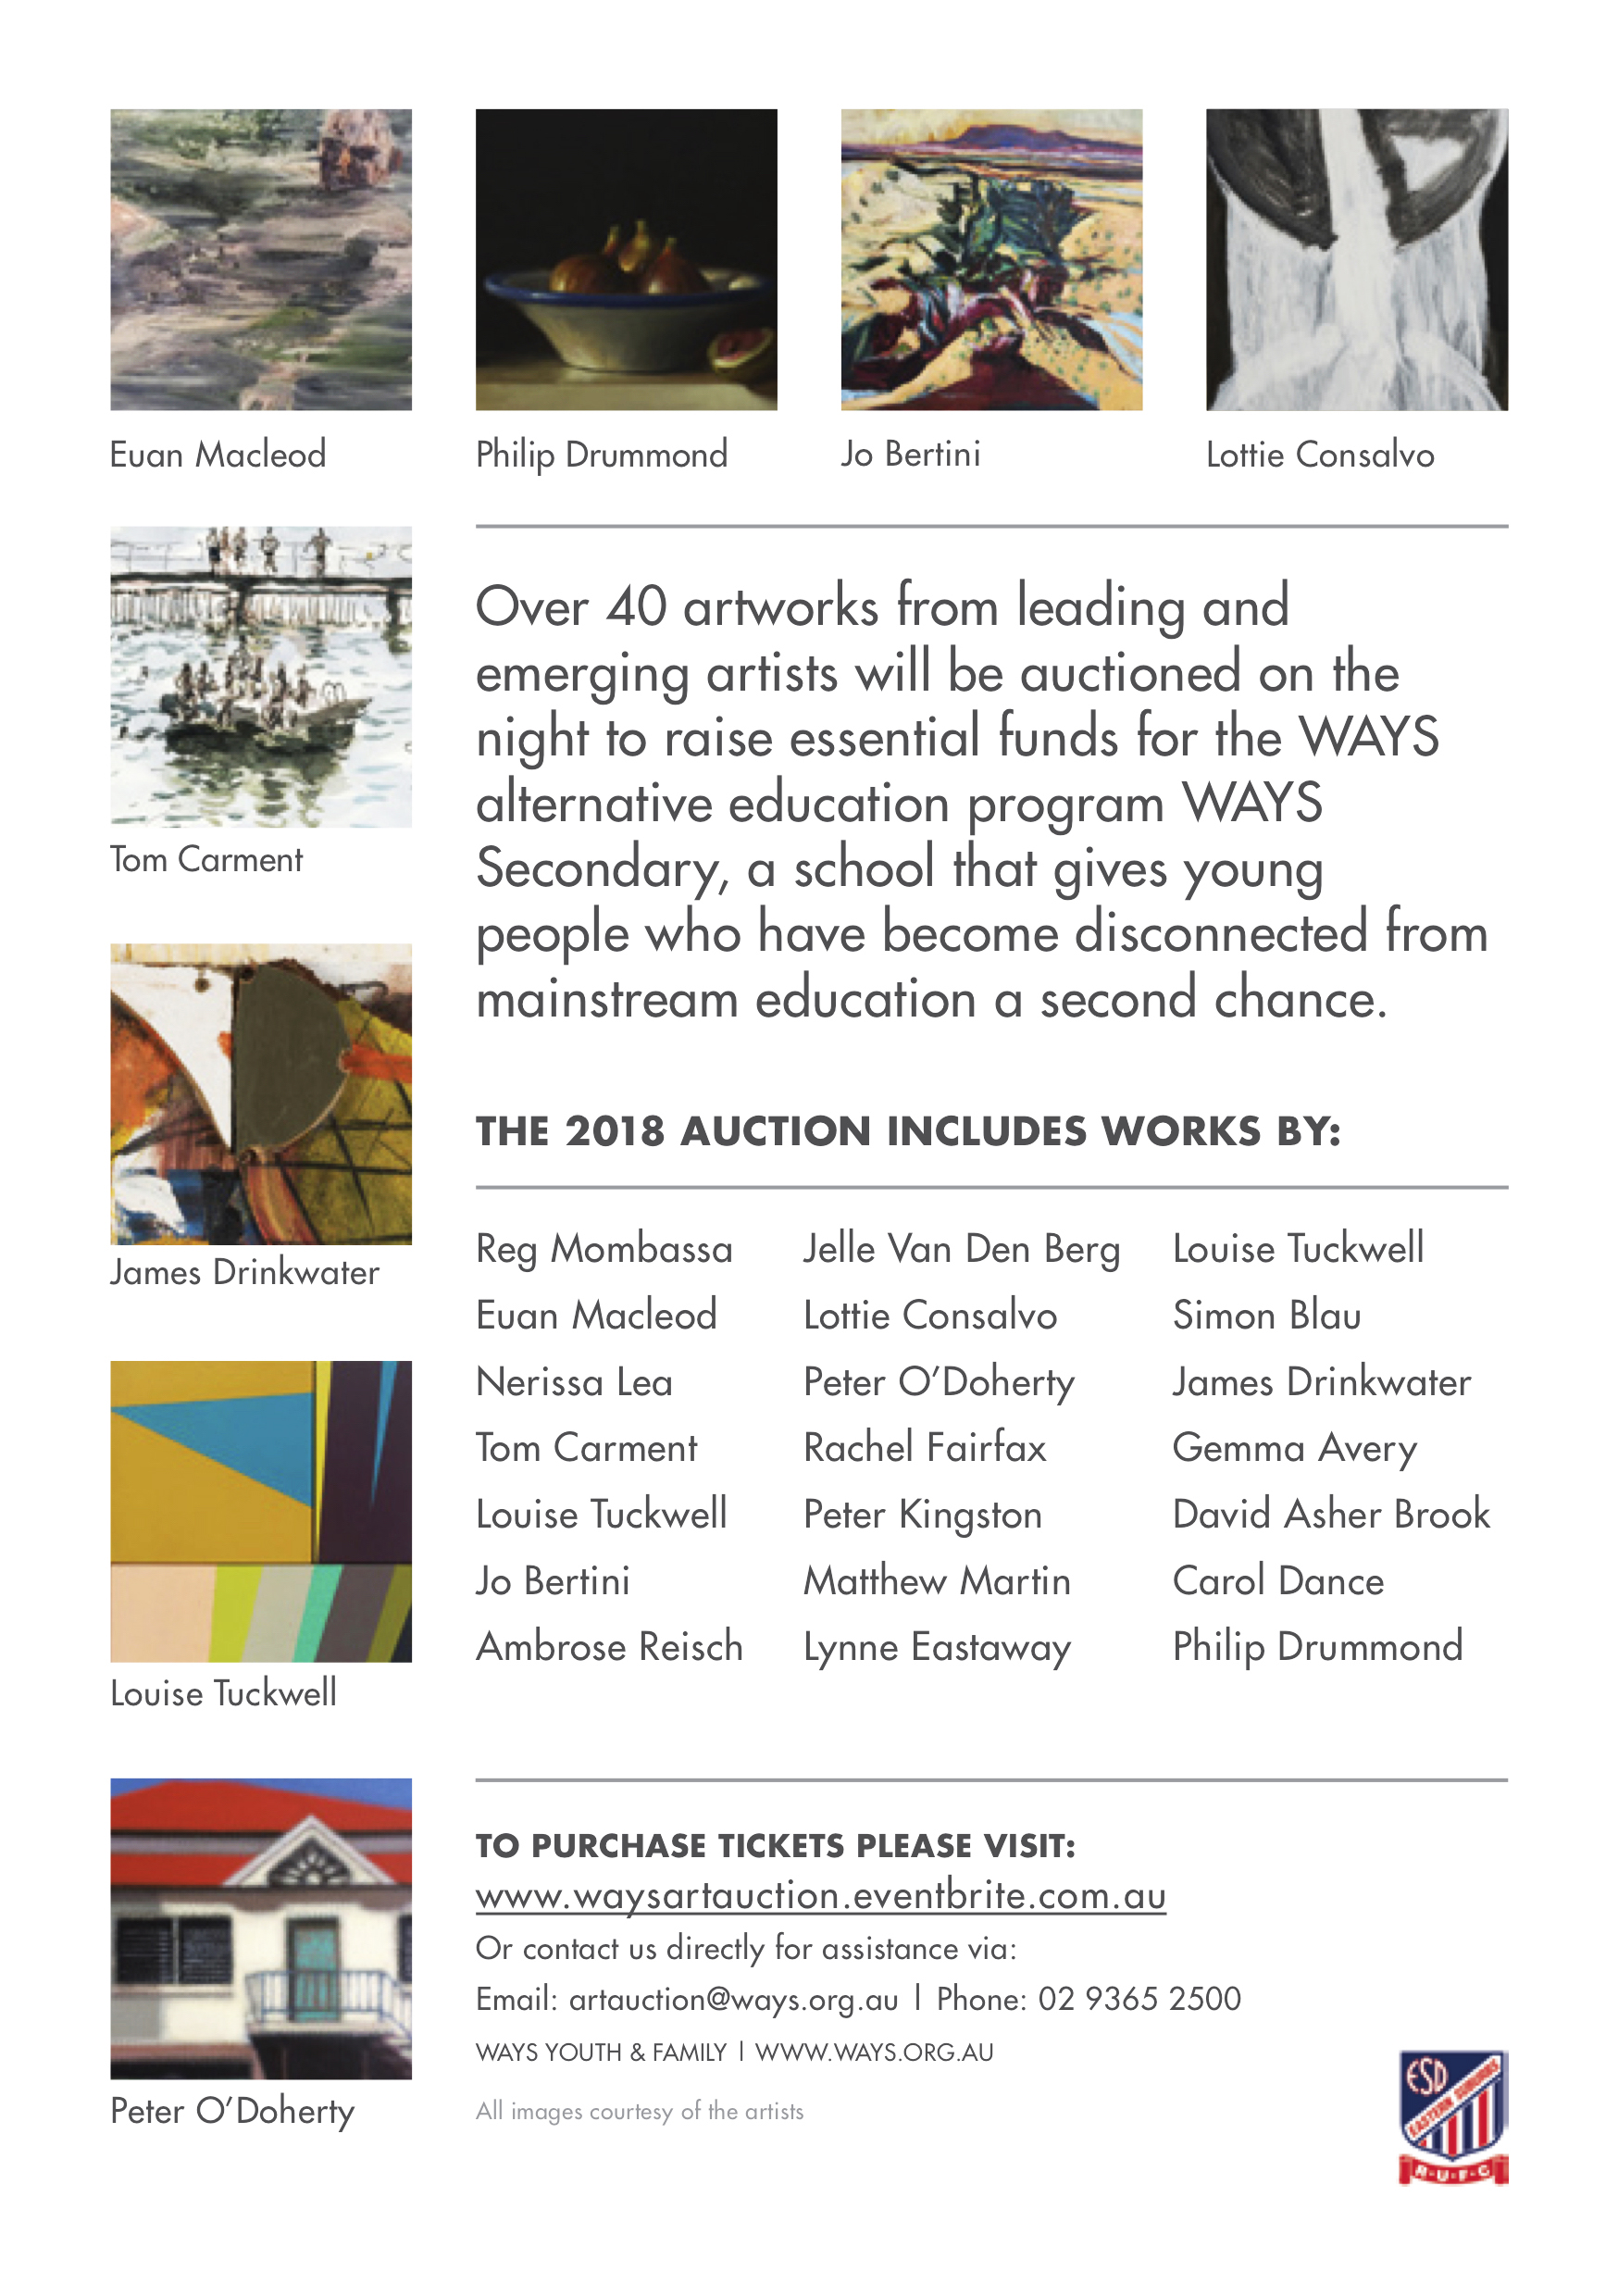 WAYS_2018_ArtAuction_Email_Invite 3